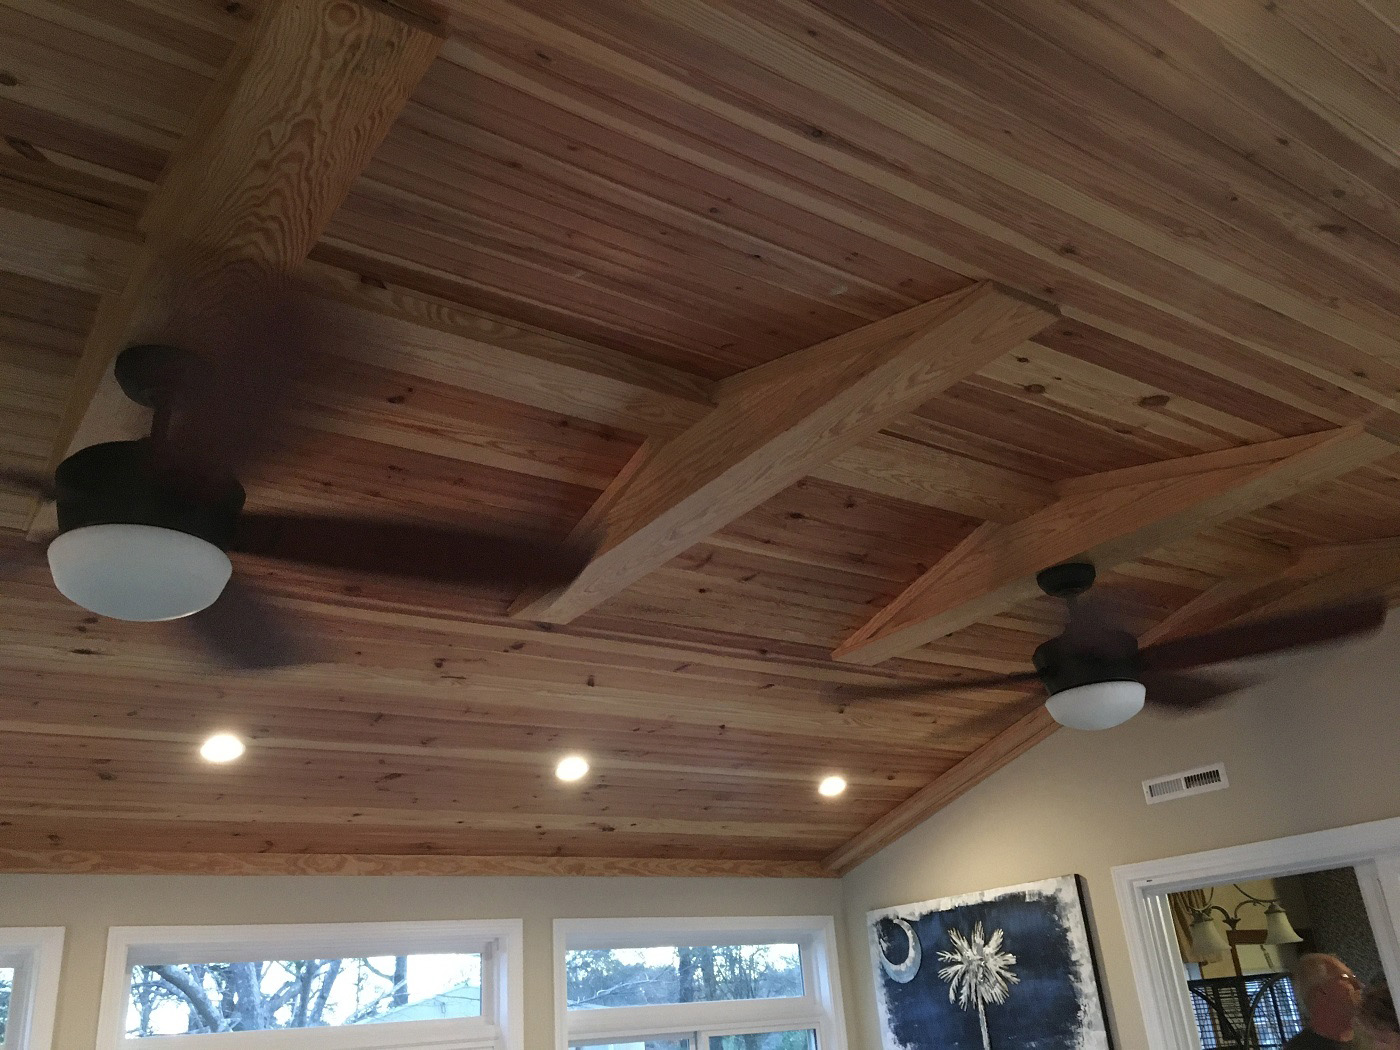 Beautiful-rustic-ceiling-finish-within-the-sunroom-interior